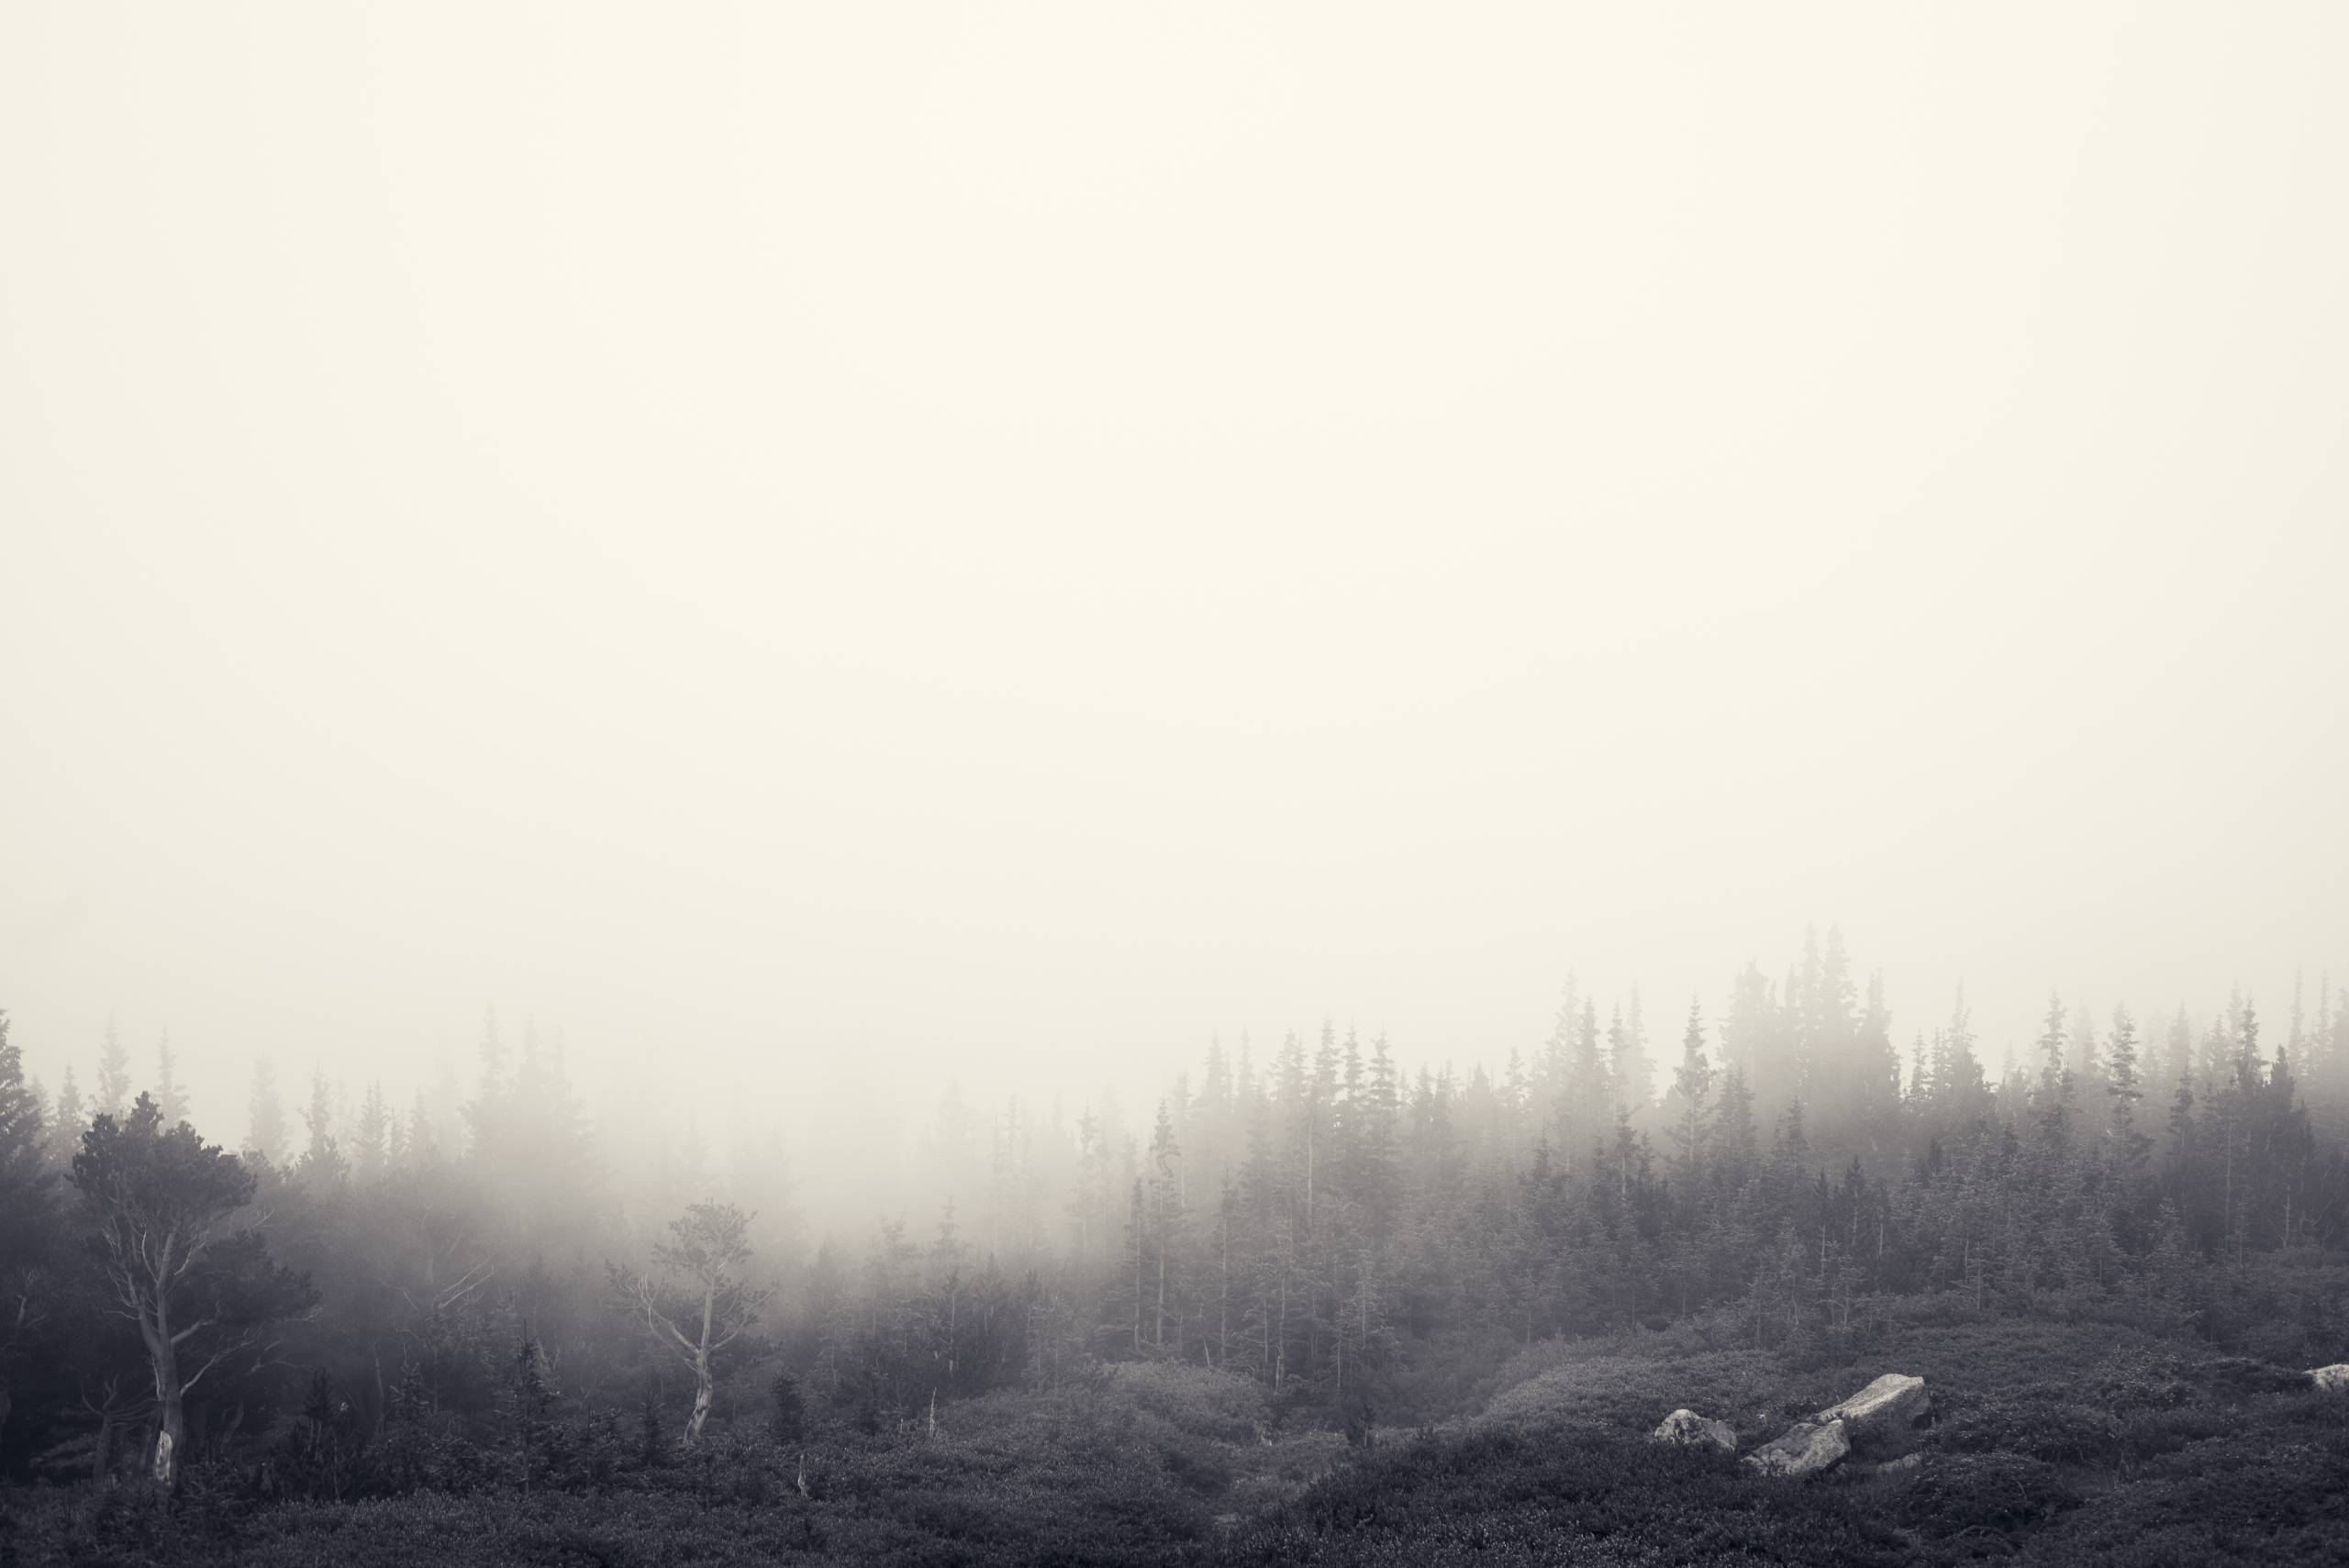 Foggy_Forest_by_Jake_Stewart.jpg